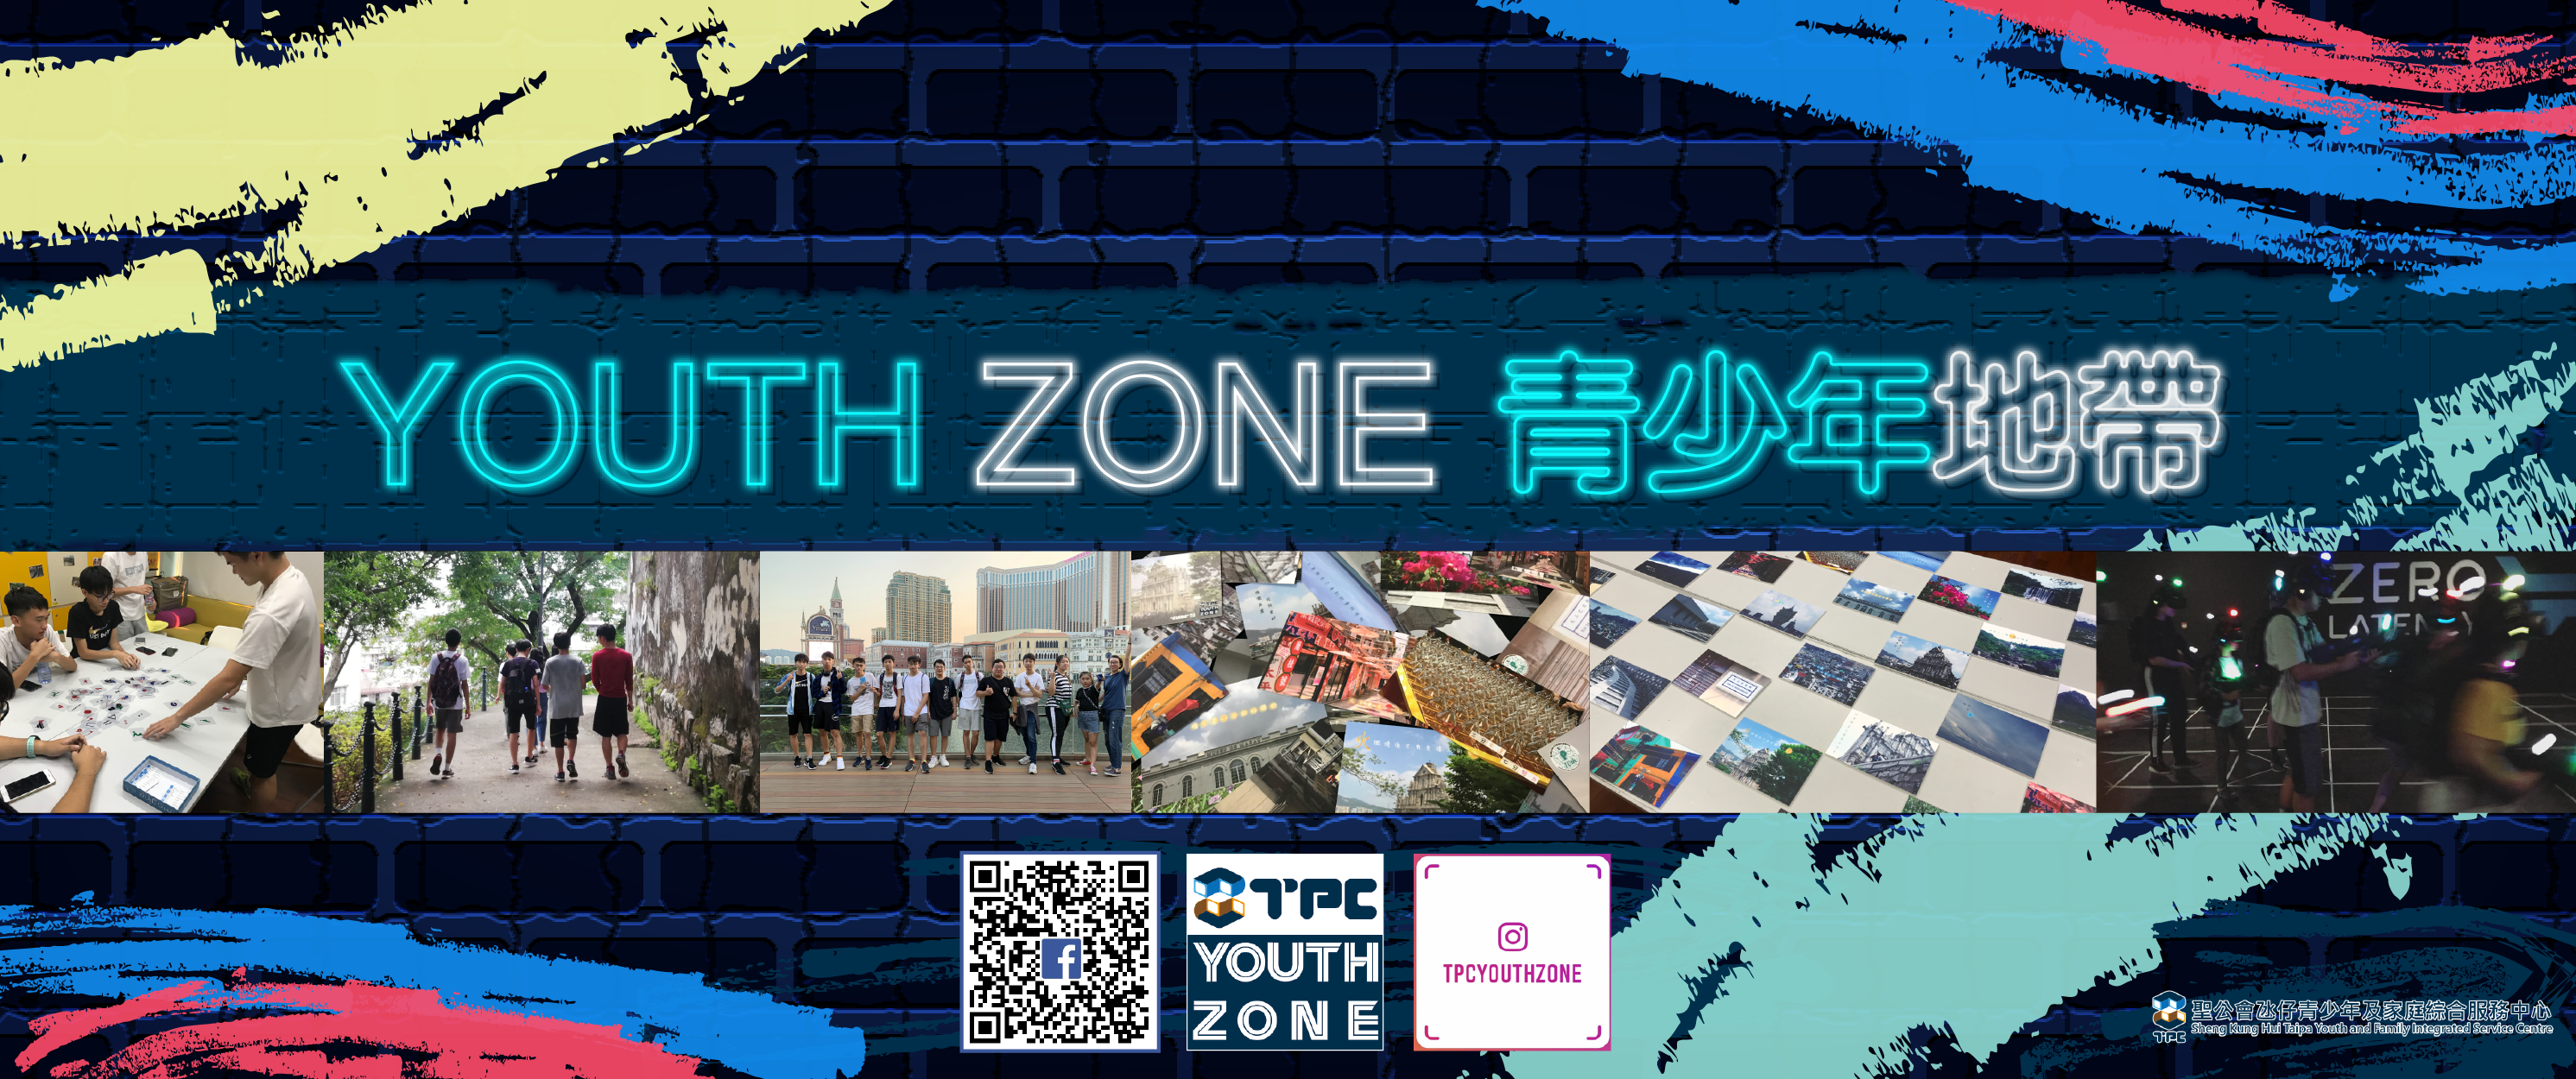 YOUTHZONE_website banner-02-02-02